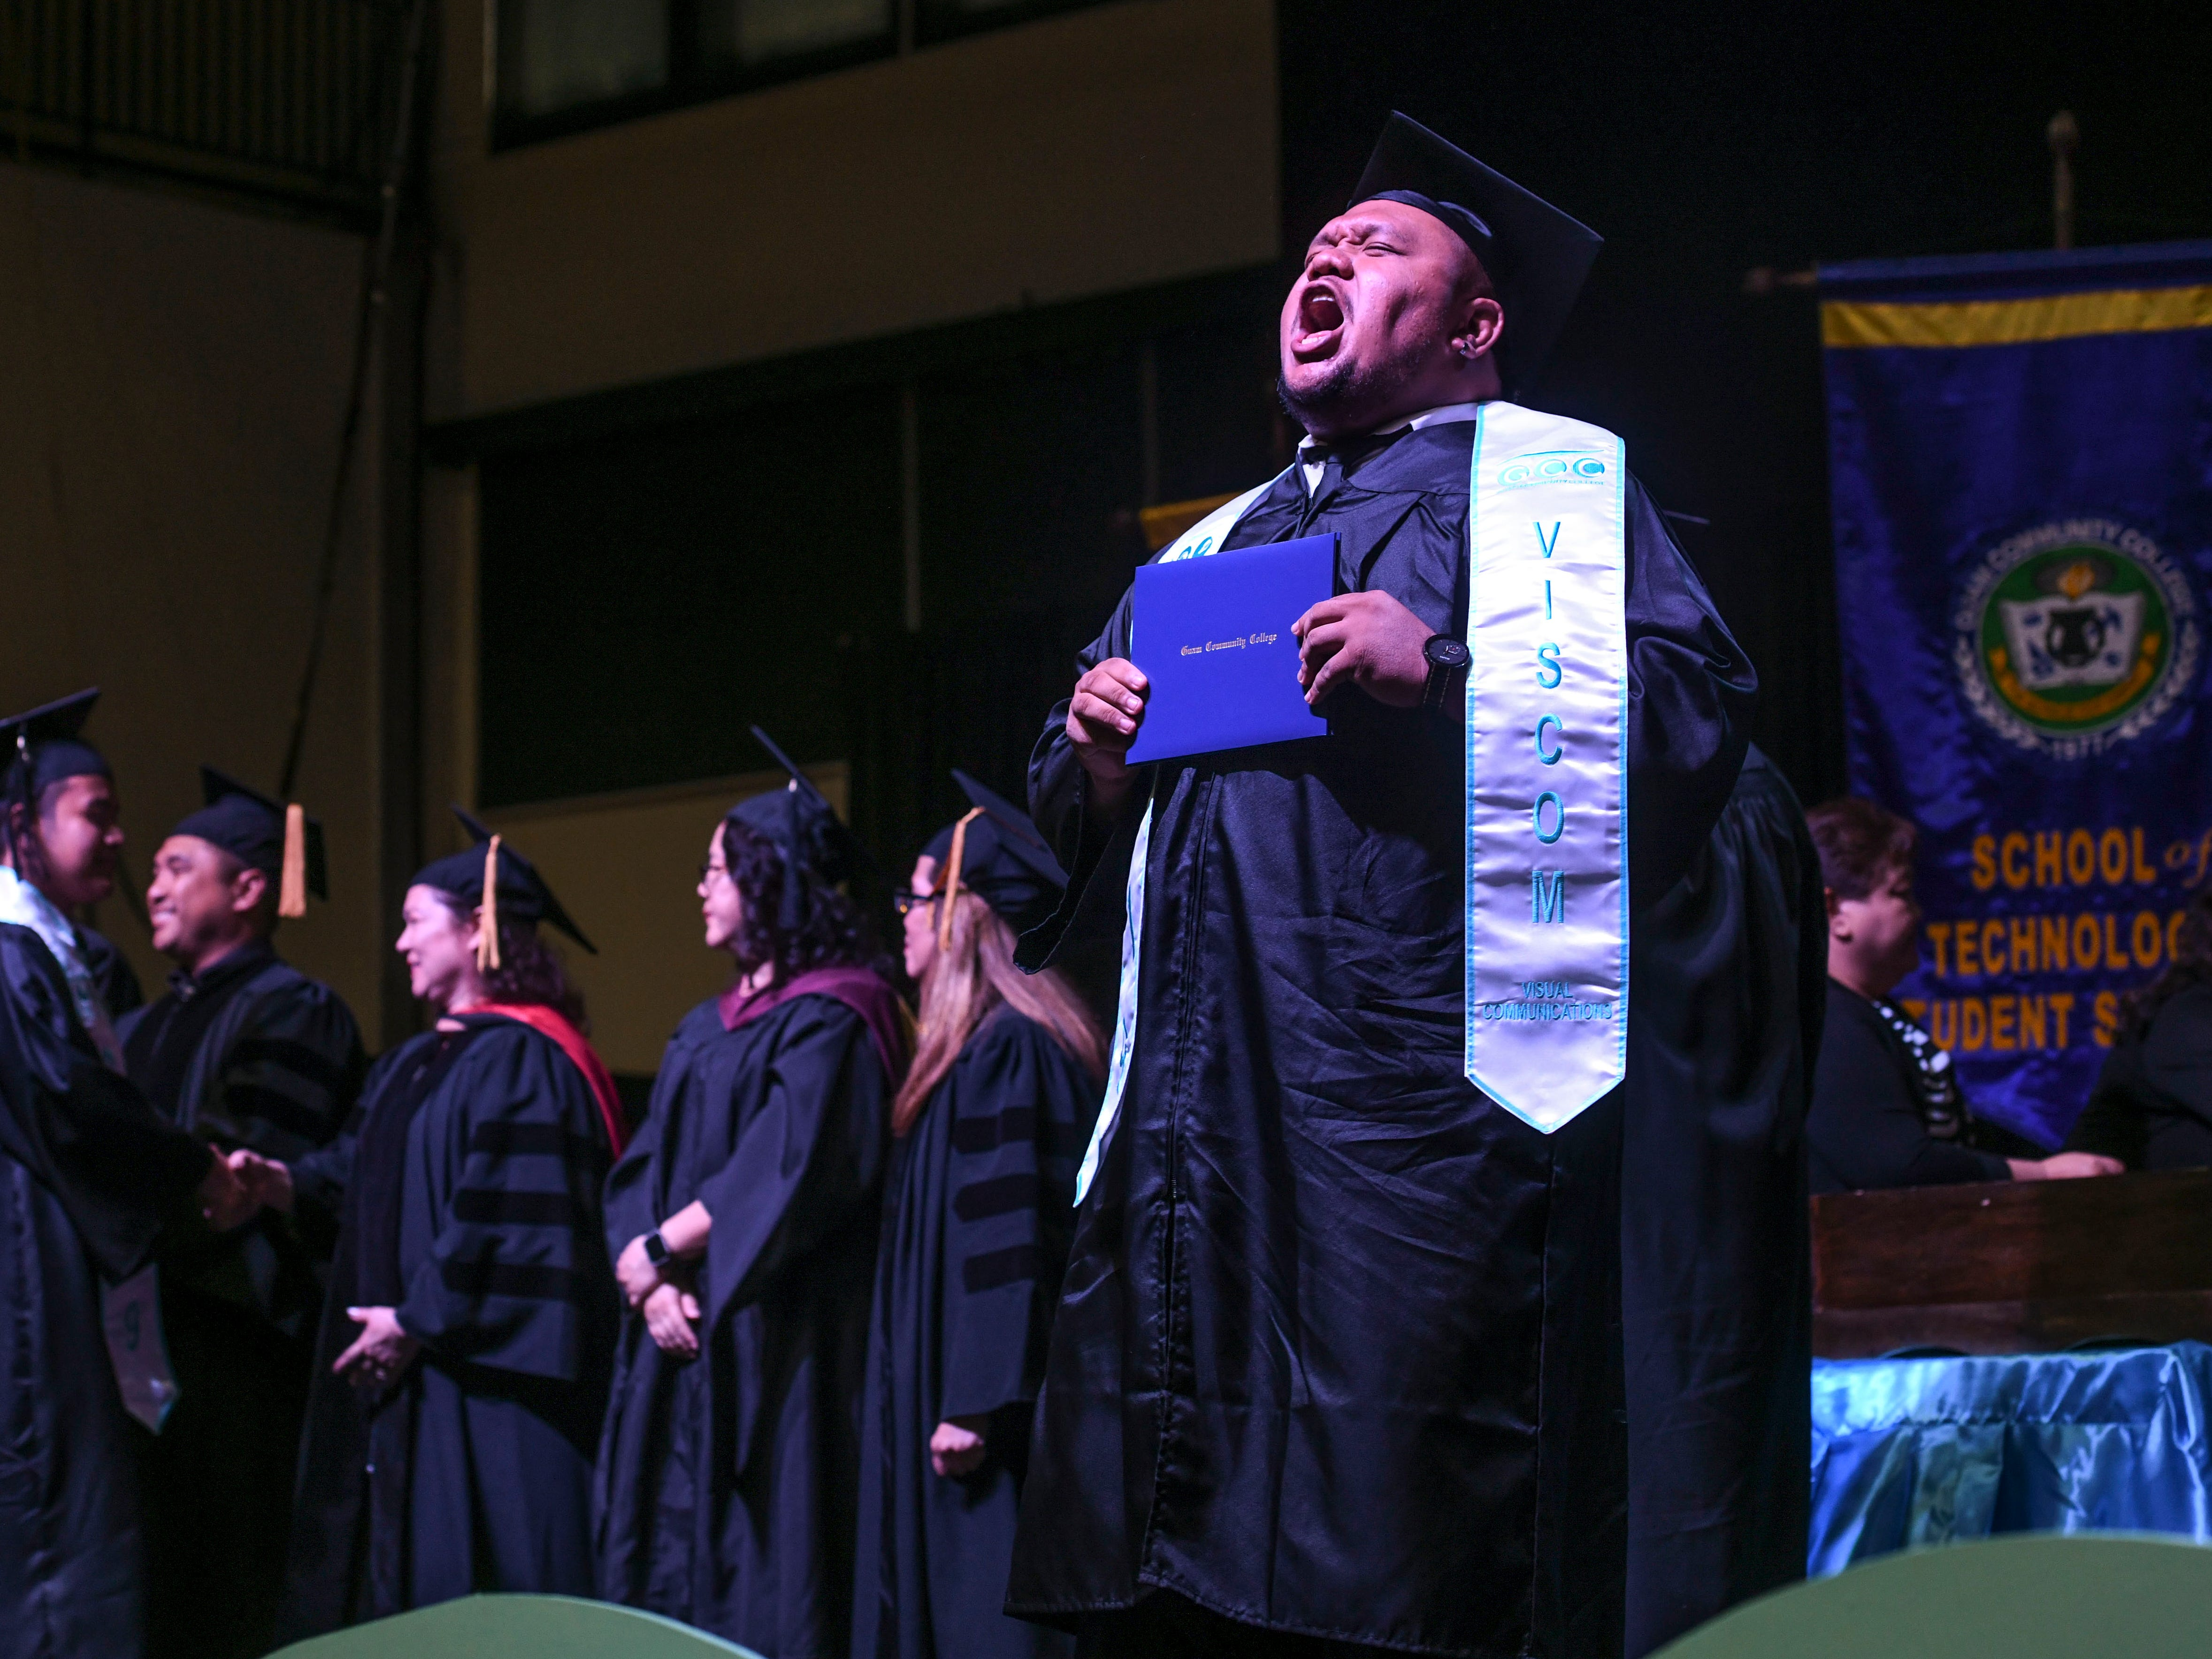 A graduate celebrates a little after receiving his certification or diploma during the Guam Community College's 2019 commencement exercise at the University of Guam in Mangilao on Friday, May 10, 2019. The college conferred a total of 435 degrees, certificates, and/or diplomas to 357 graduates at the event attended by hundreds of family members, friends and other well wishers.